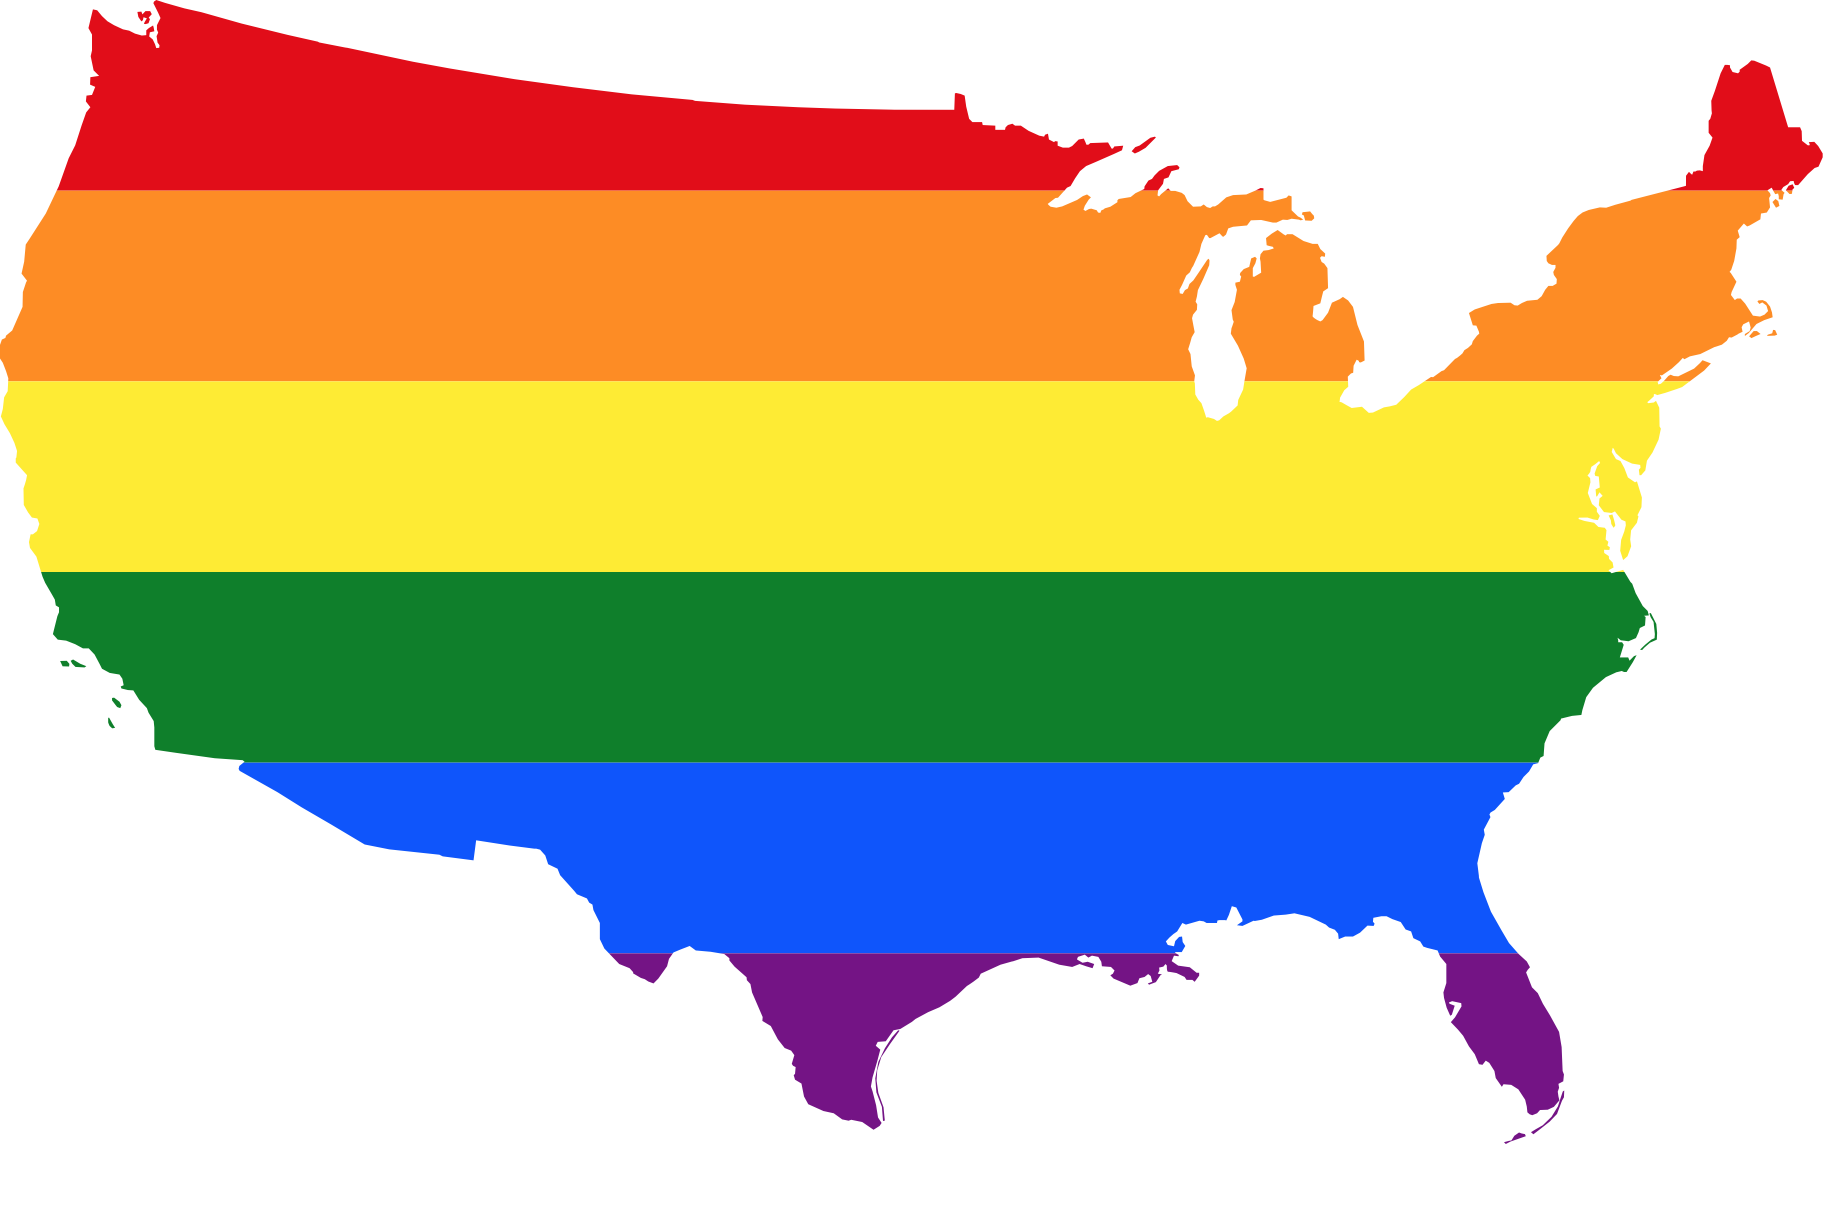 an overview of the homosexual rights in the united states of america during the nineties This item will ship to united states, but the seller has not specified shipping options contact the seller - opens in a new window or tab and request a shipping method to your location shipping cost cannot be calculated.